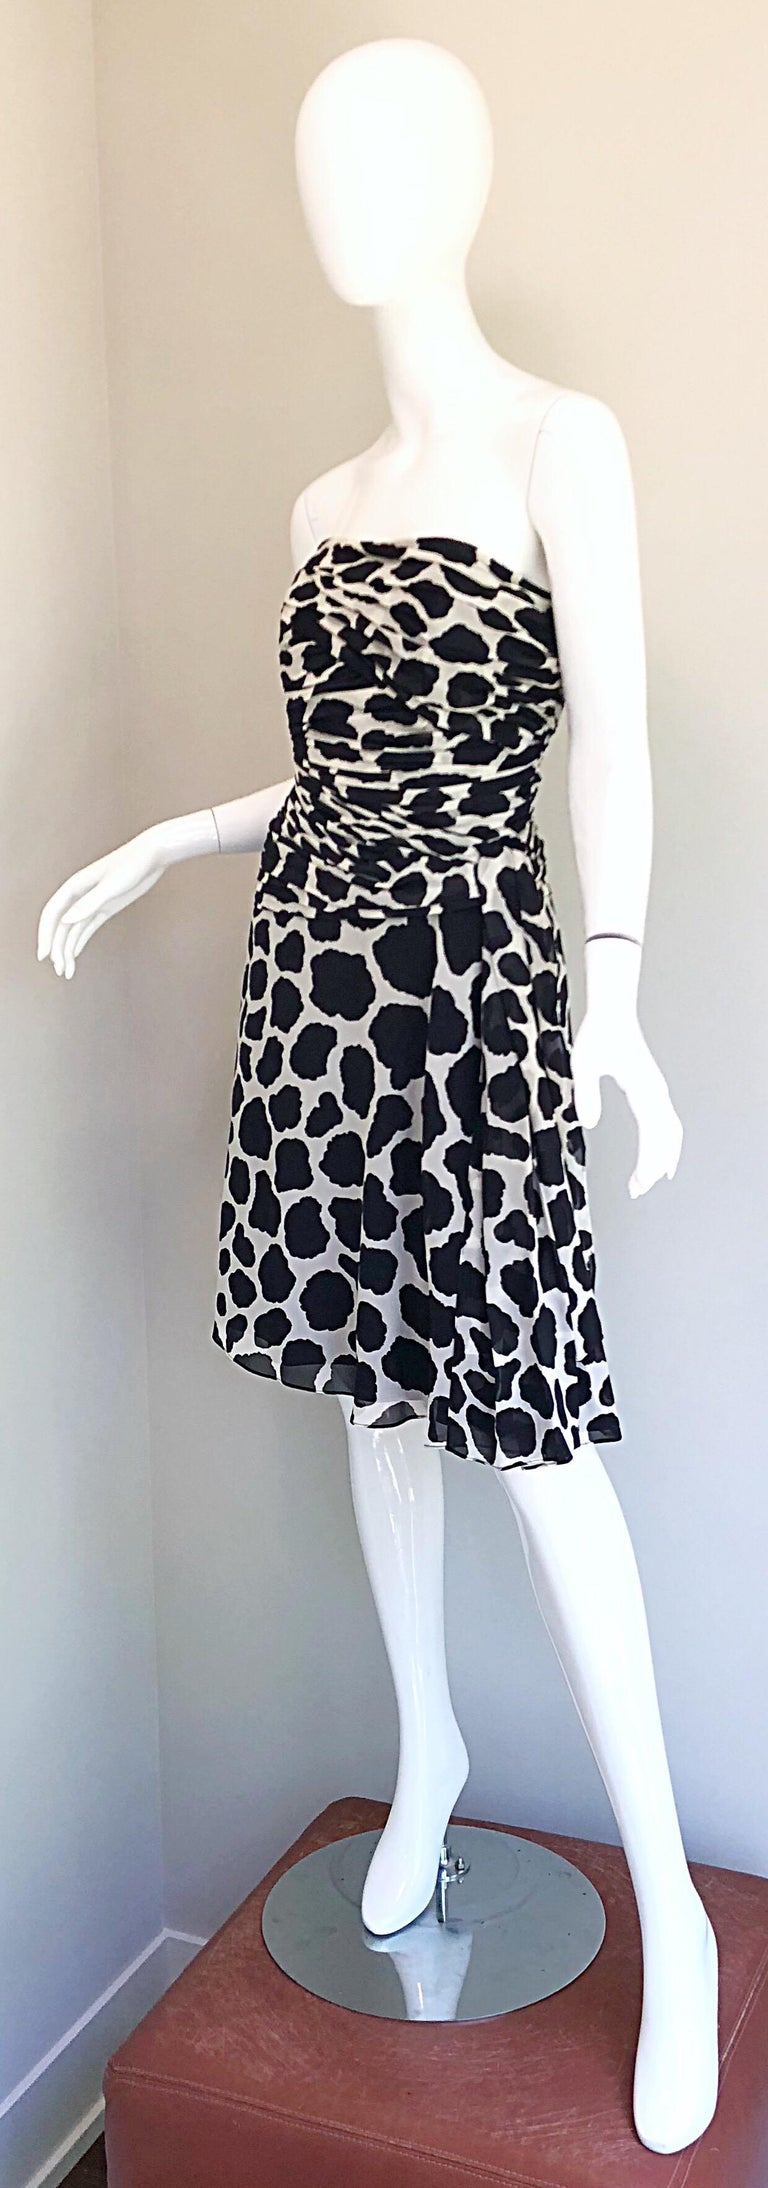 1990s Louis Feraud Size 8 / 10 Black and White Vintage Strapless Chiffon Dress For Sale 3